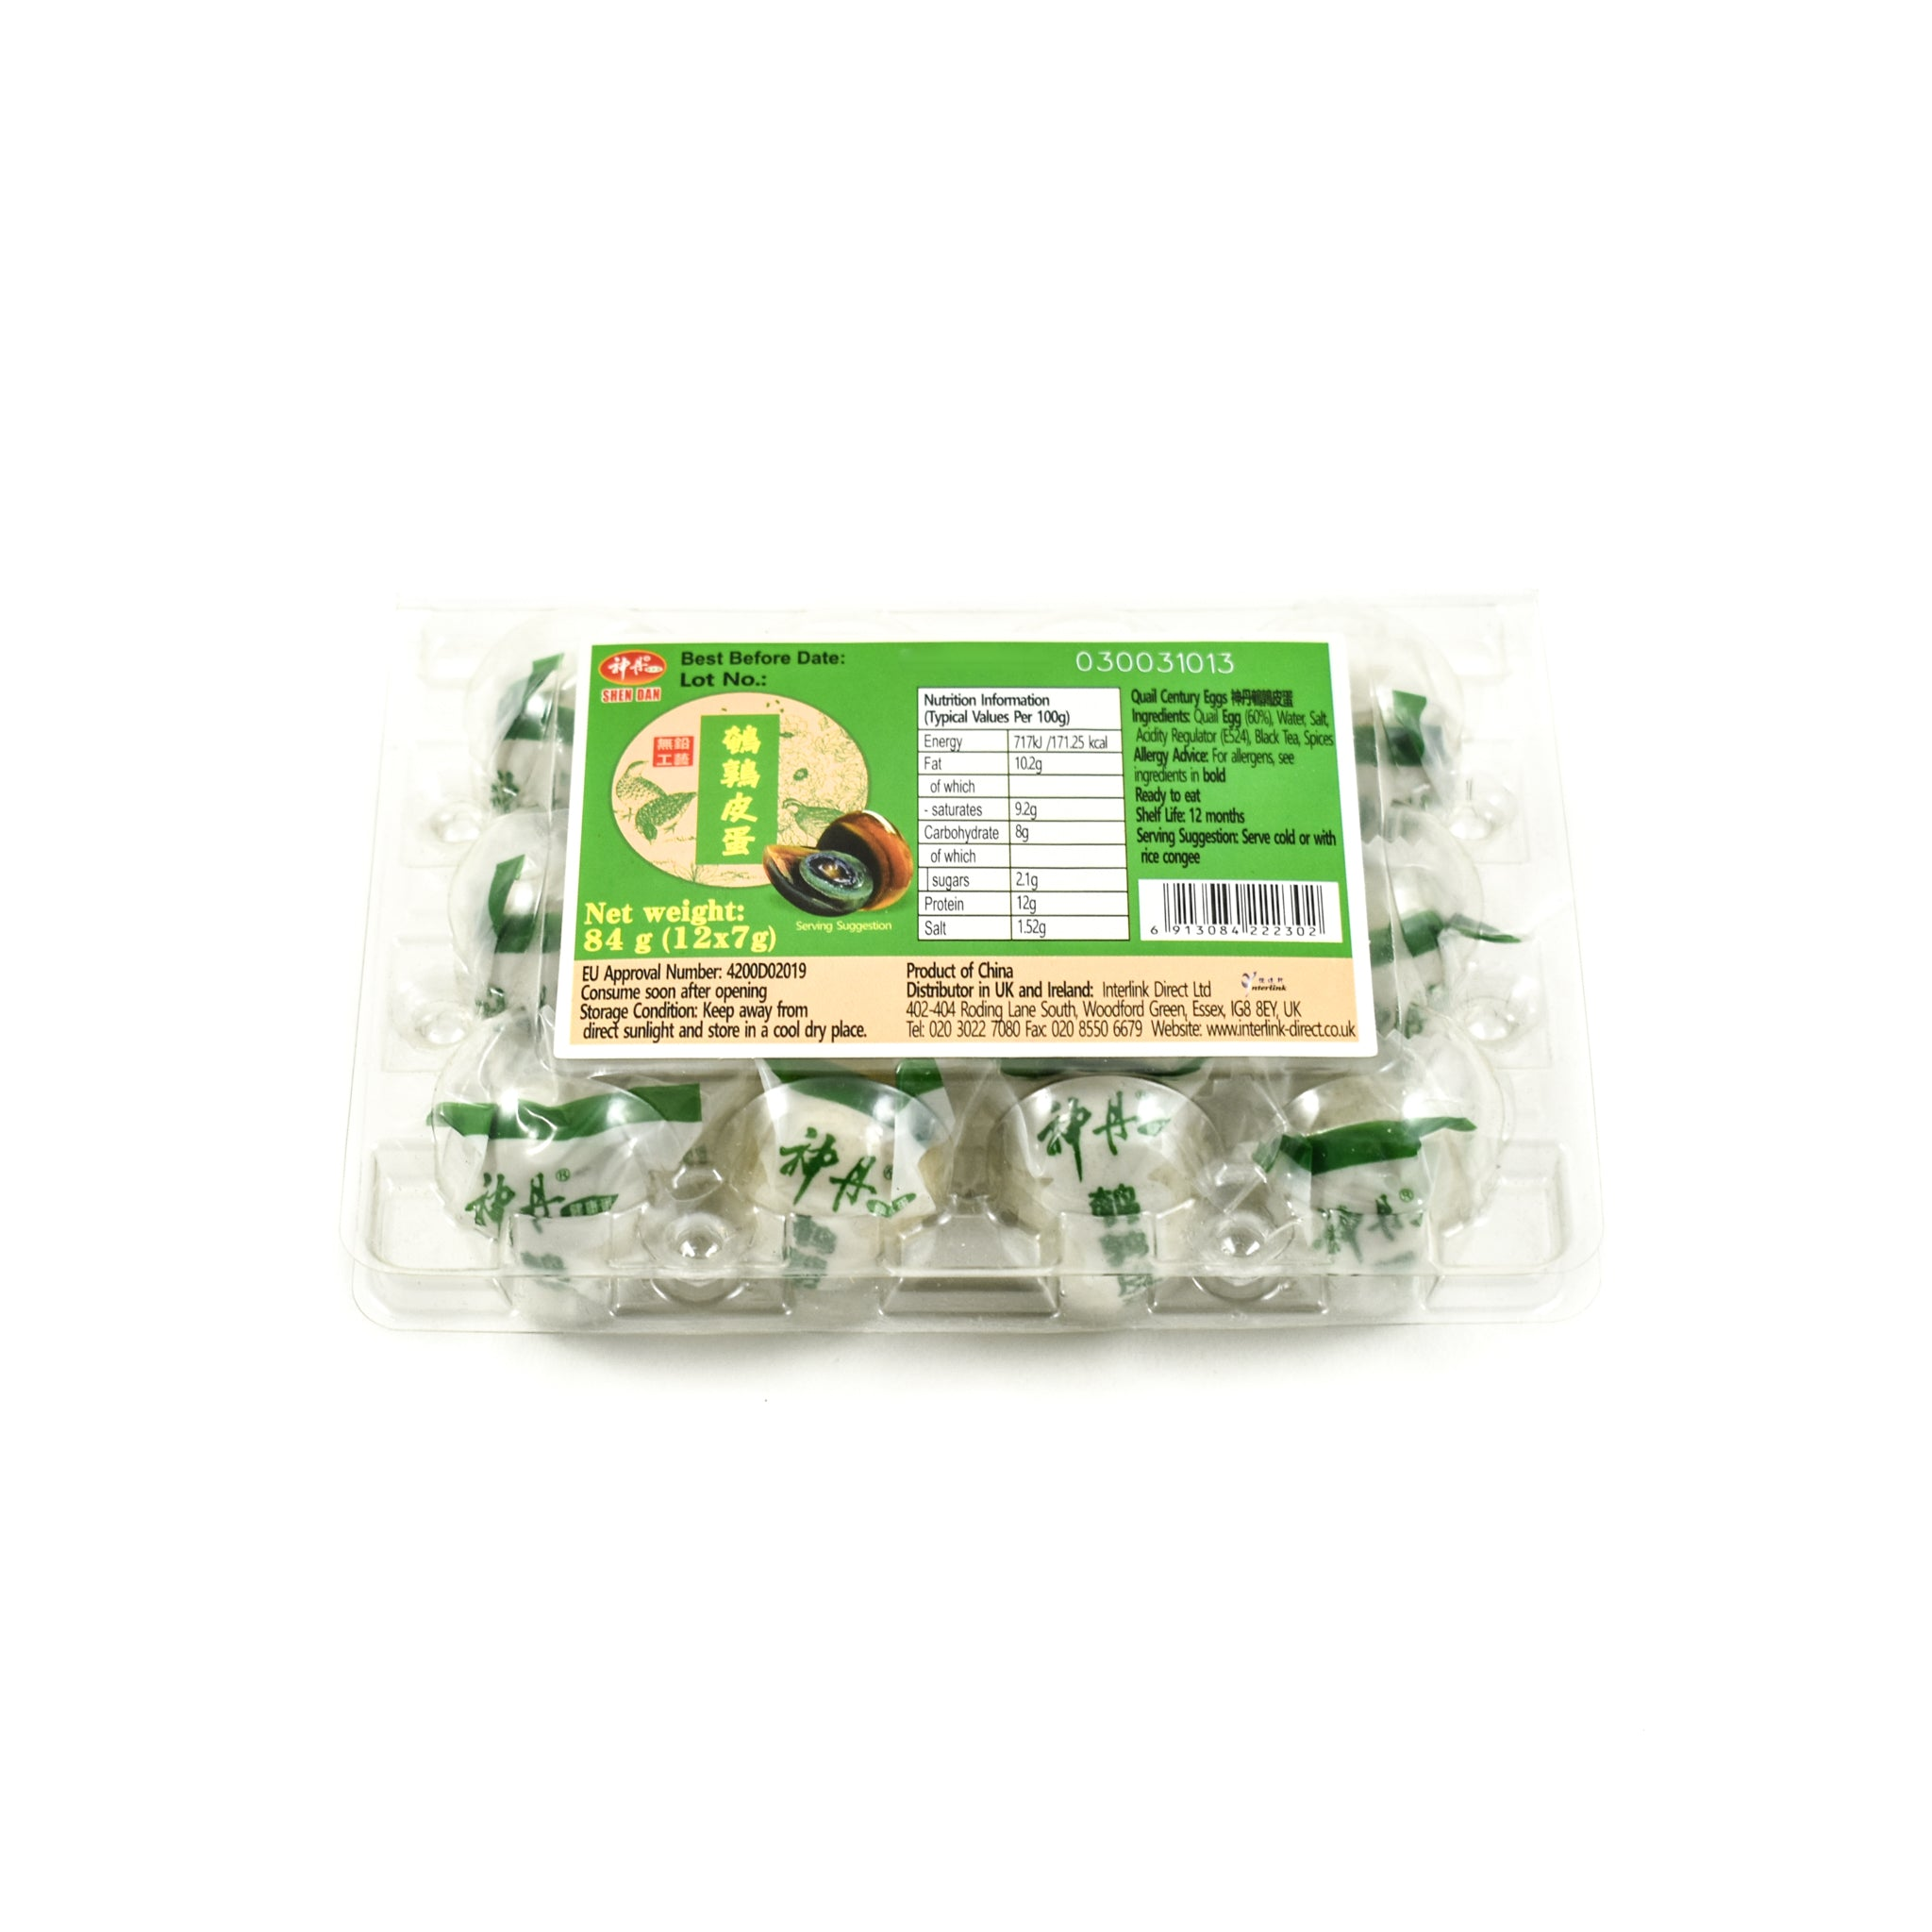 Shen Dan Quail Century Eggs - 12 eggs Ingredients Pickled & Preserved Vegetables Chinese Food